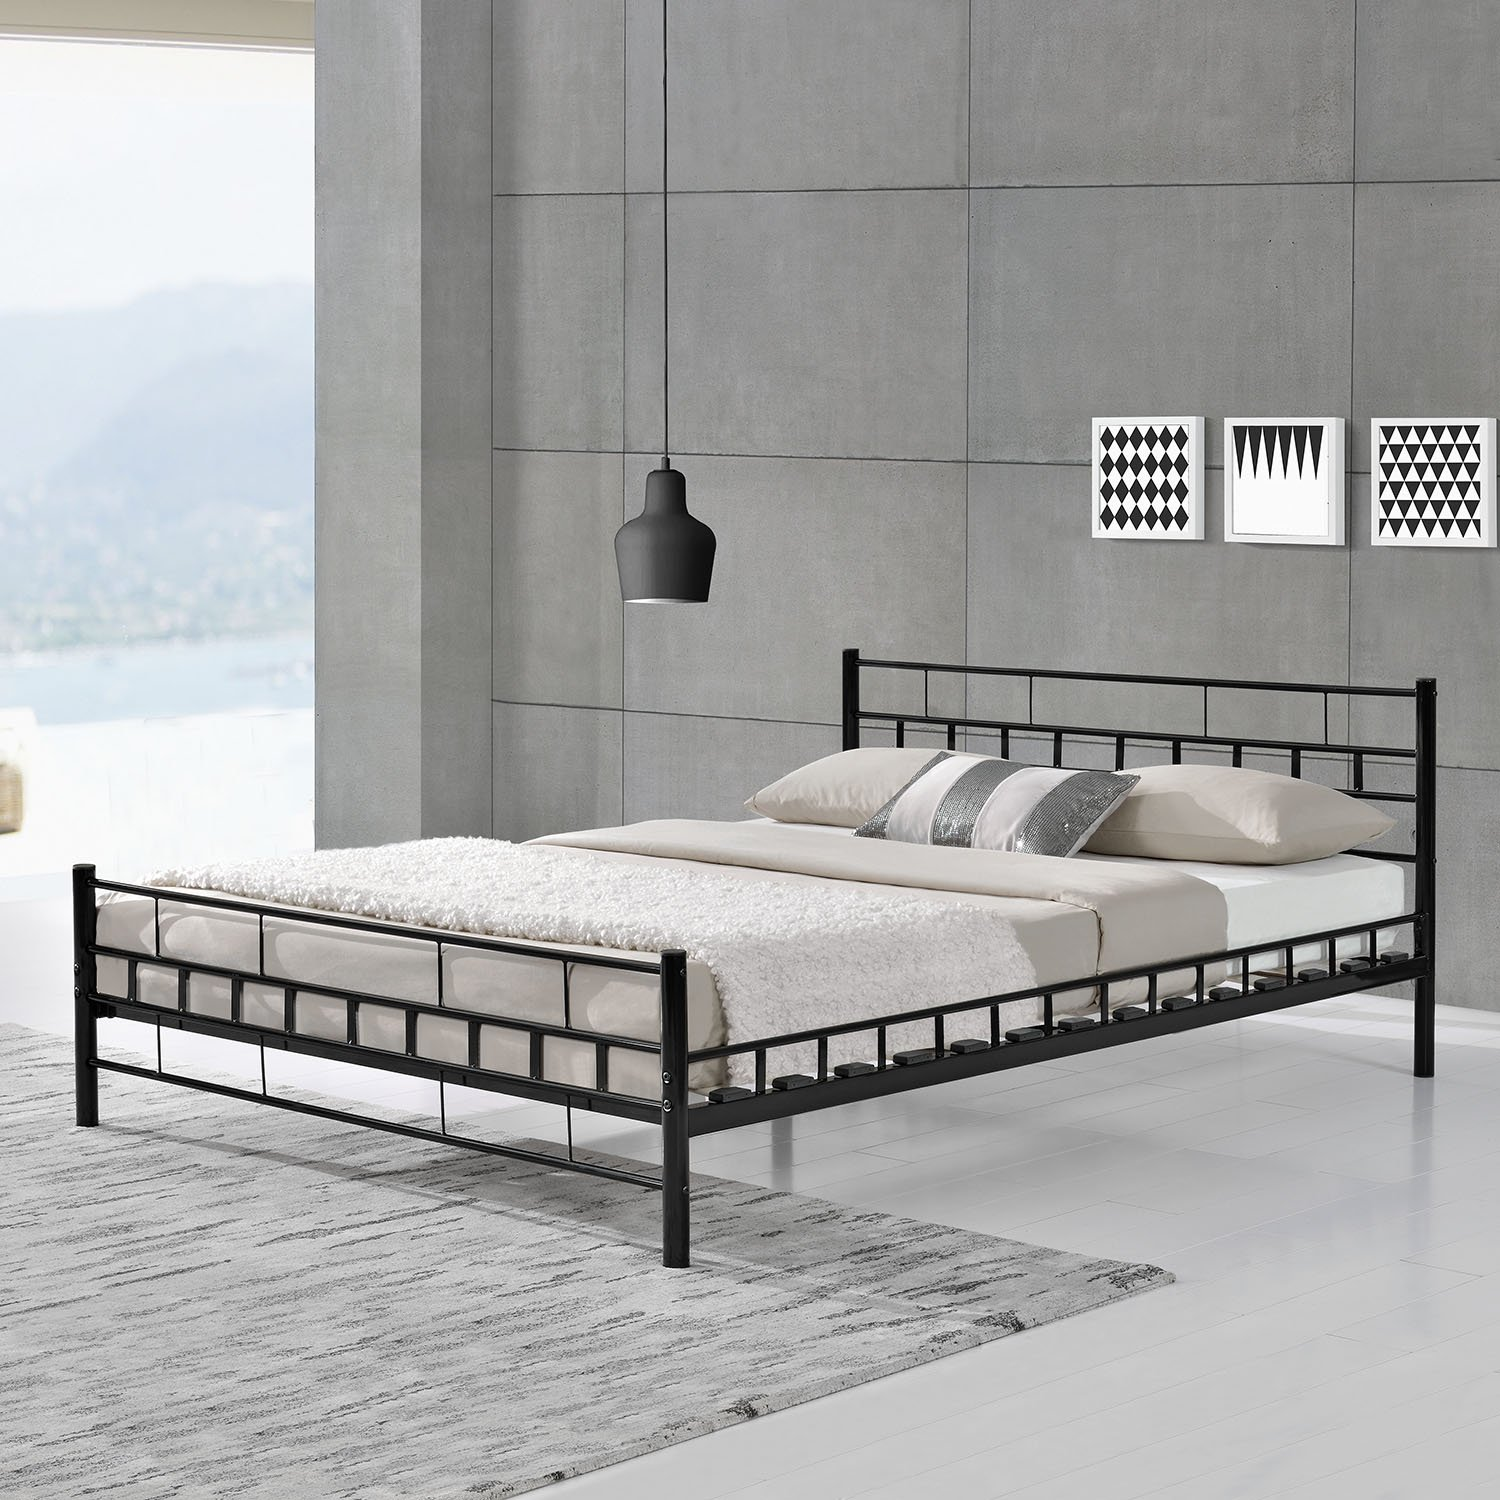 eisenbett 180x200 excellent fabulous with himmelbett metall x with eisenbett 180x200 fabulous. Black Bedroom Furniture Sets. Home Design Ideas